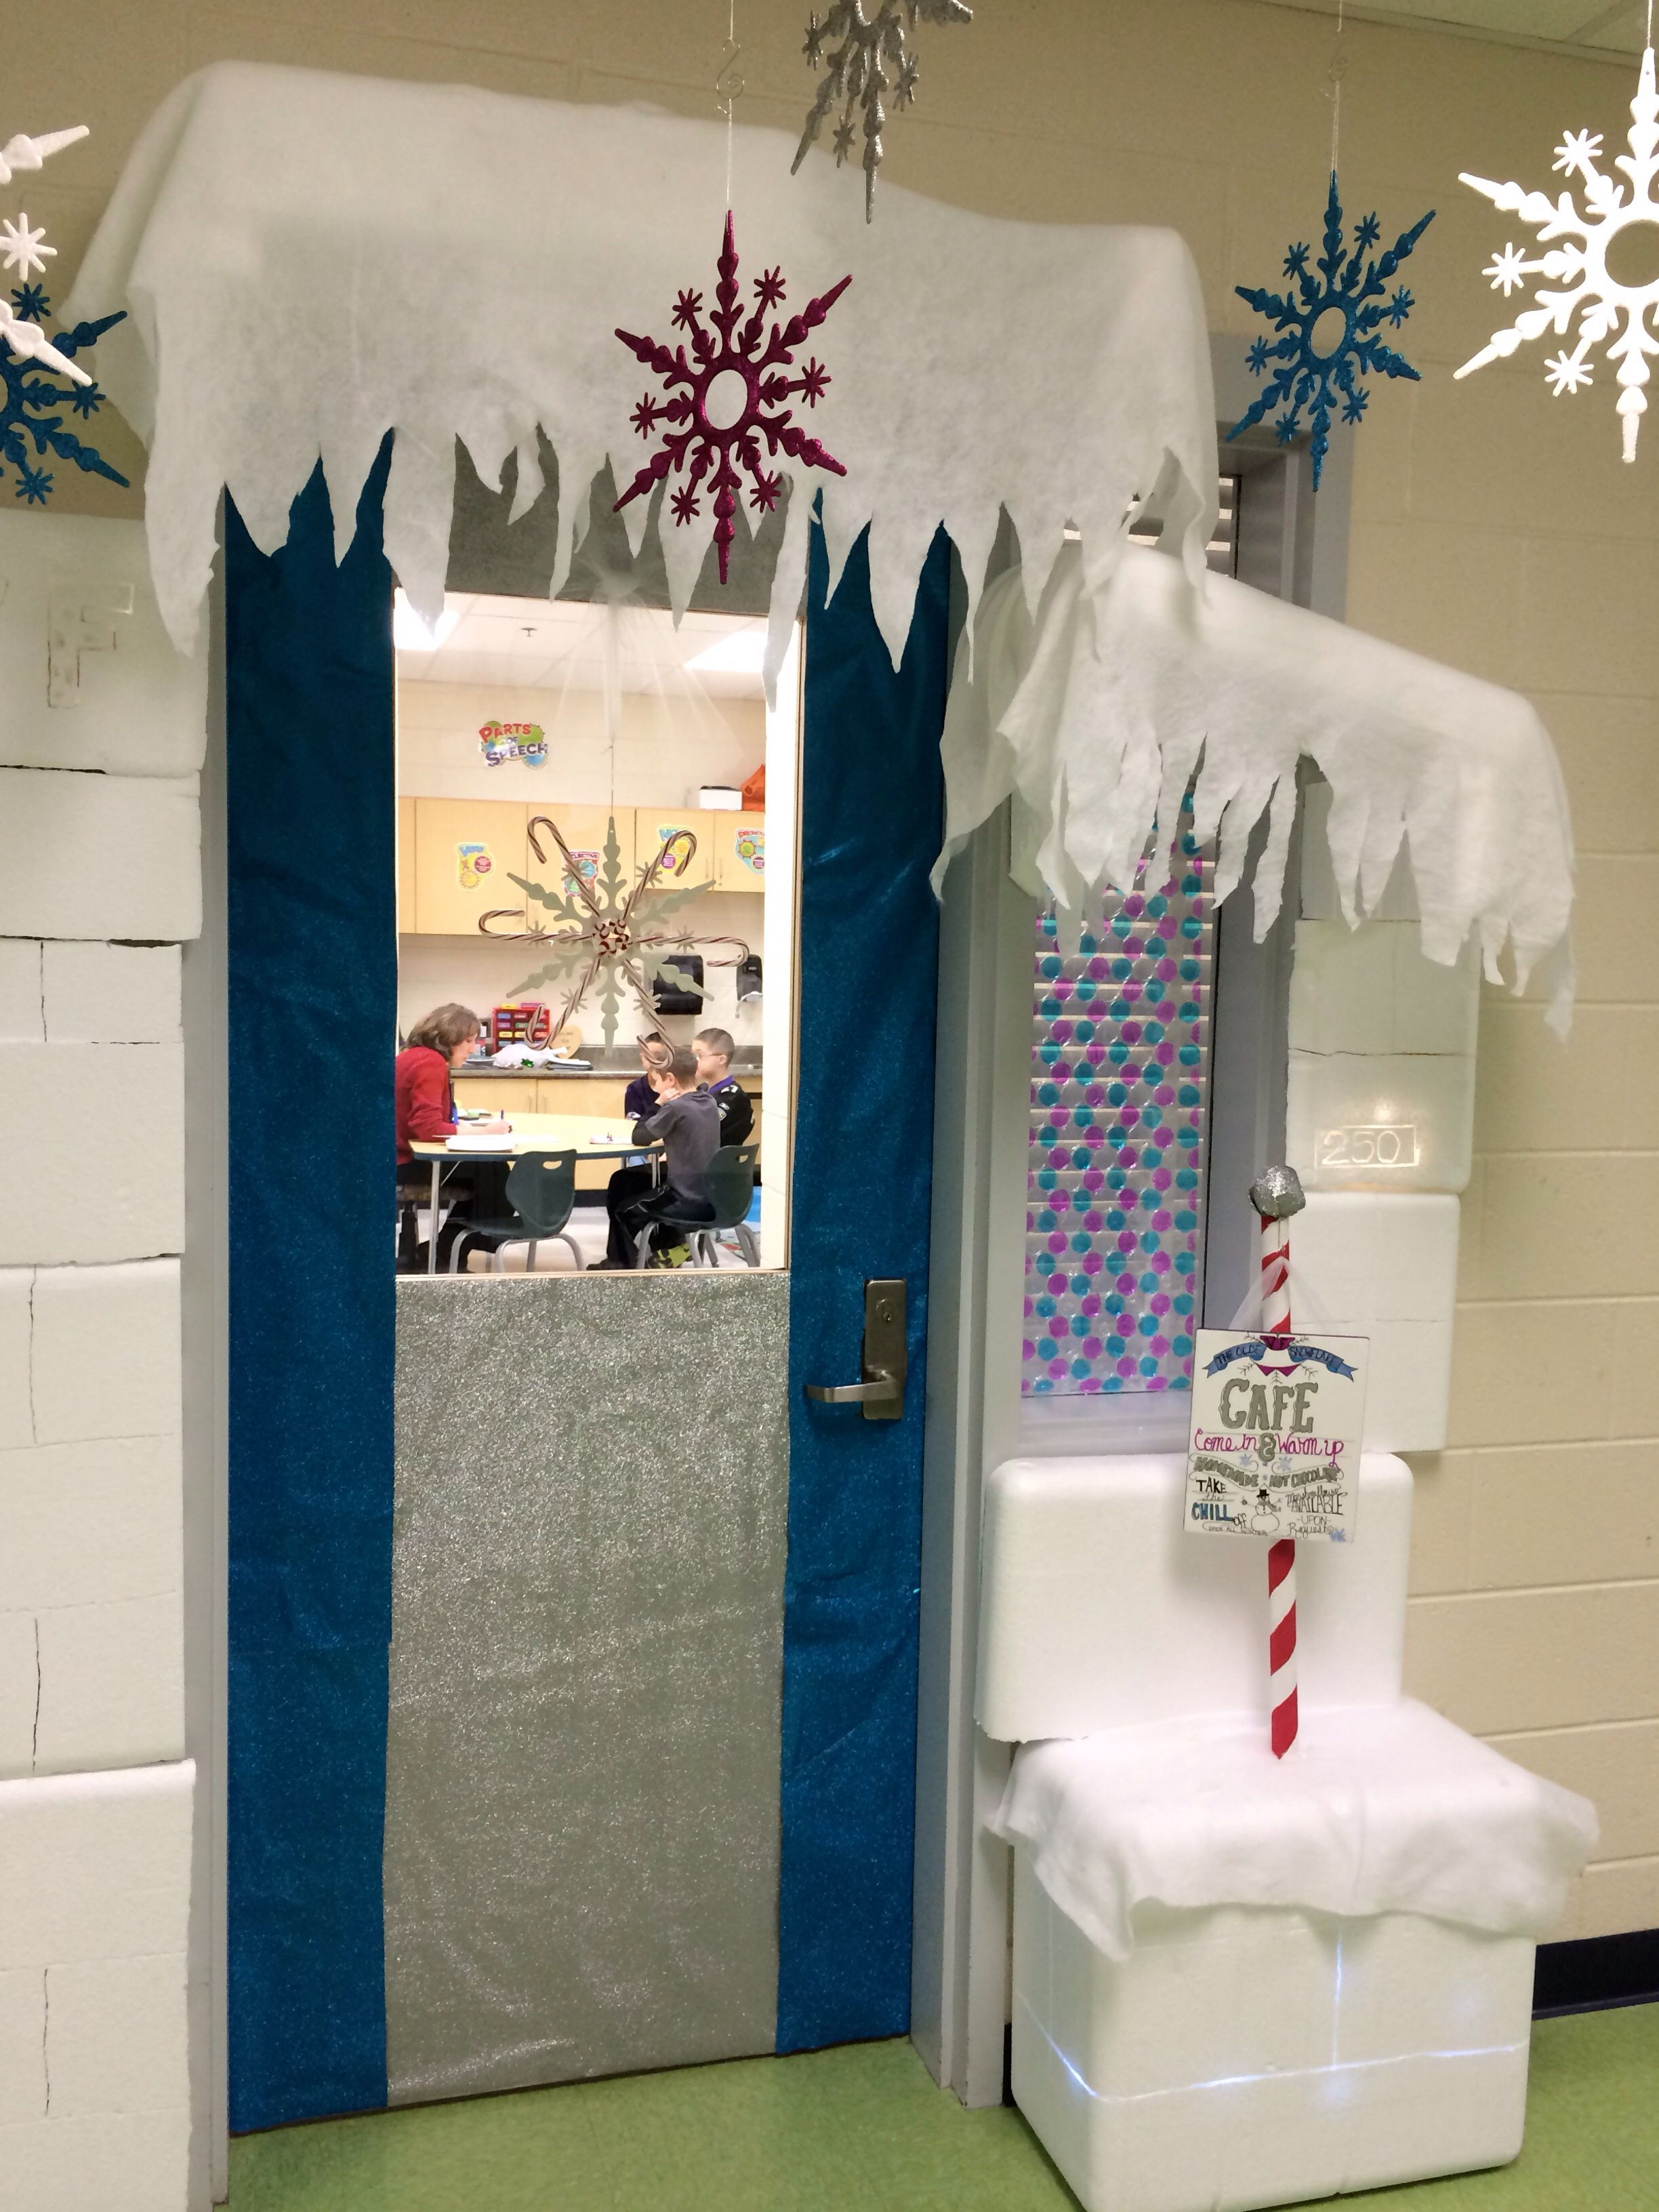 Winter Wonderland Classroom Decoration Ideas ~ My winter wonderland classroom door ran over to the speech